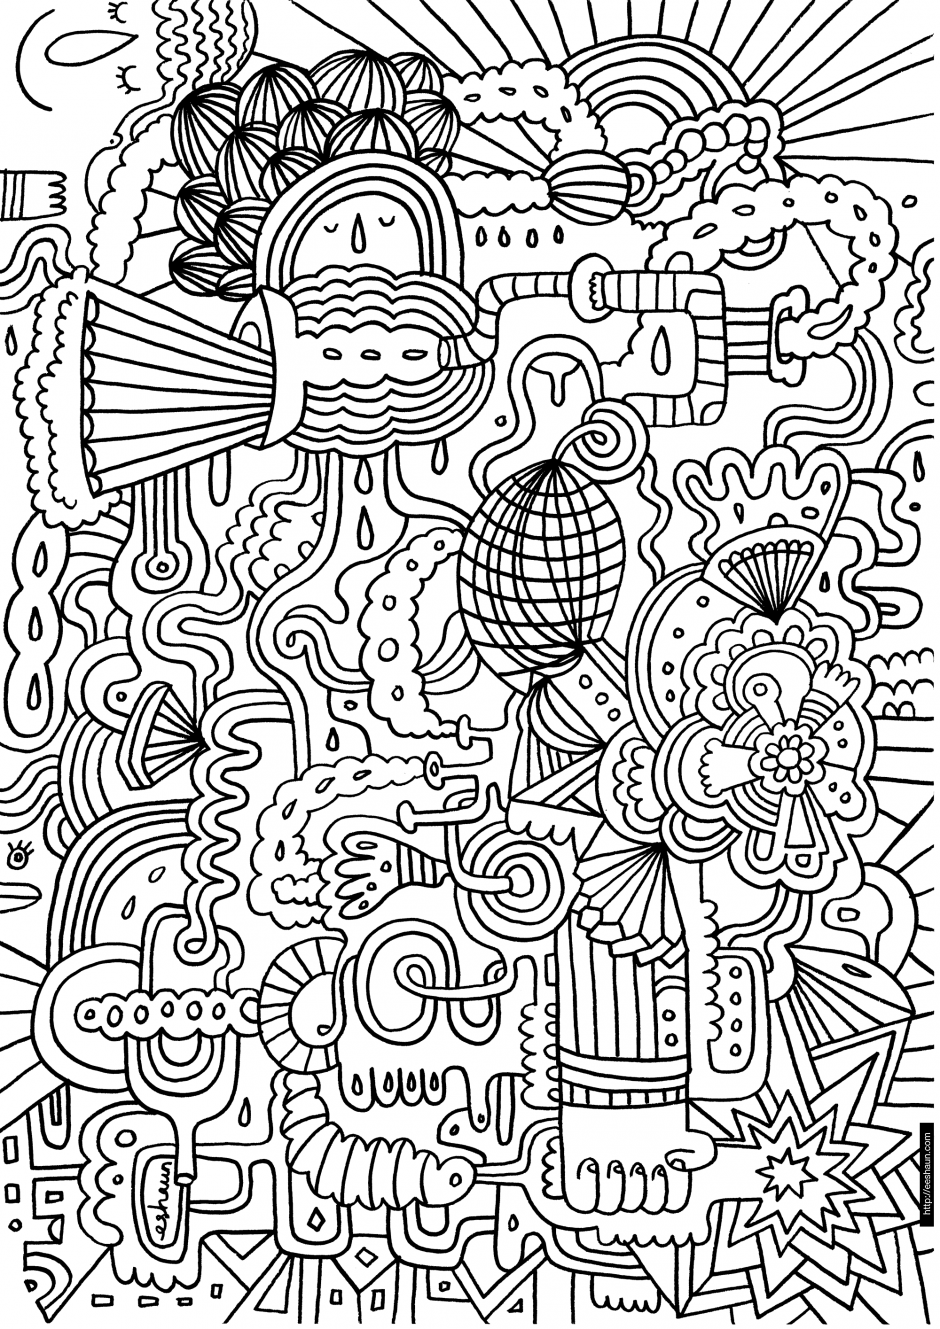 colour book coloring pages of flowers for teenagers - Coloring Books For Teens